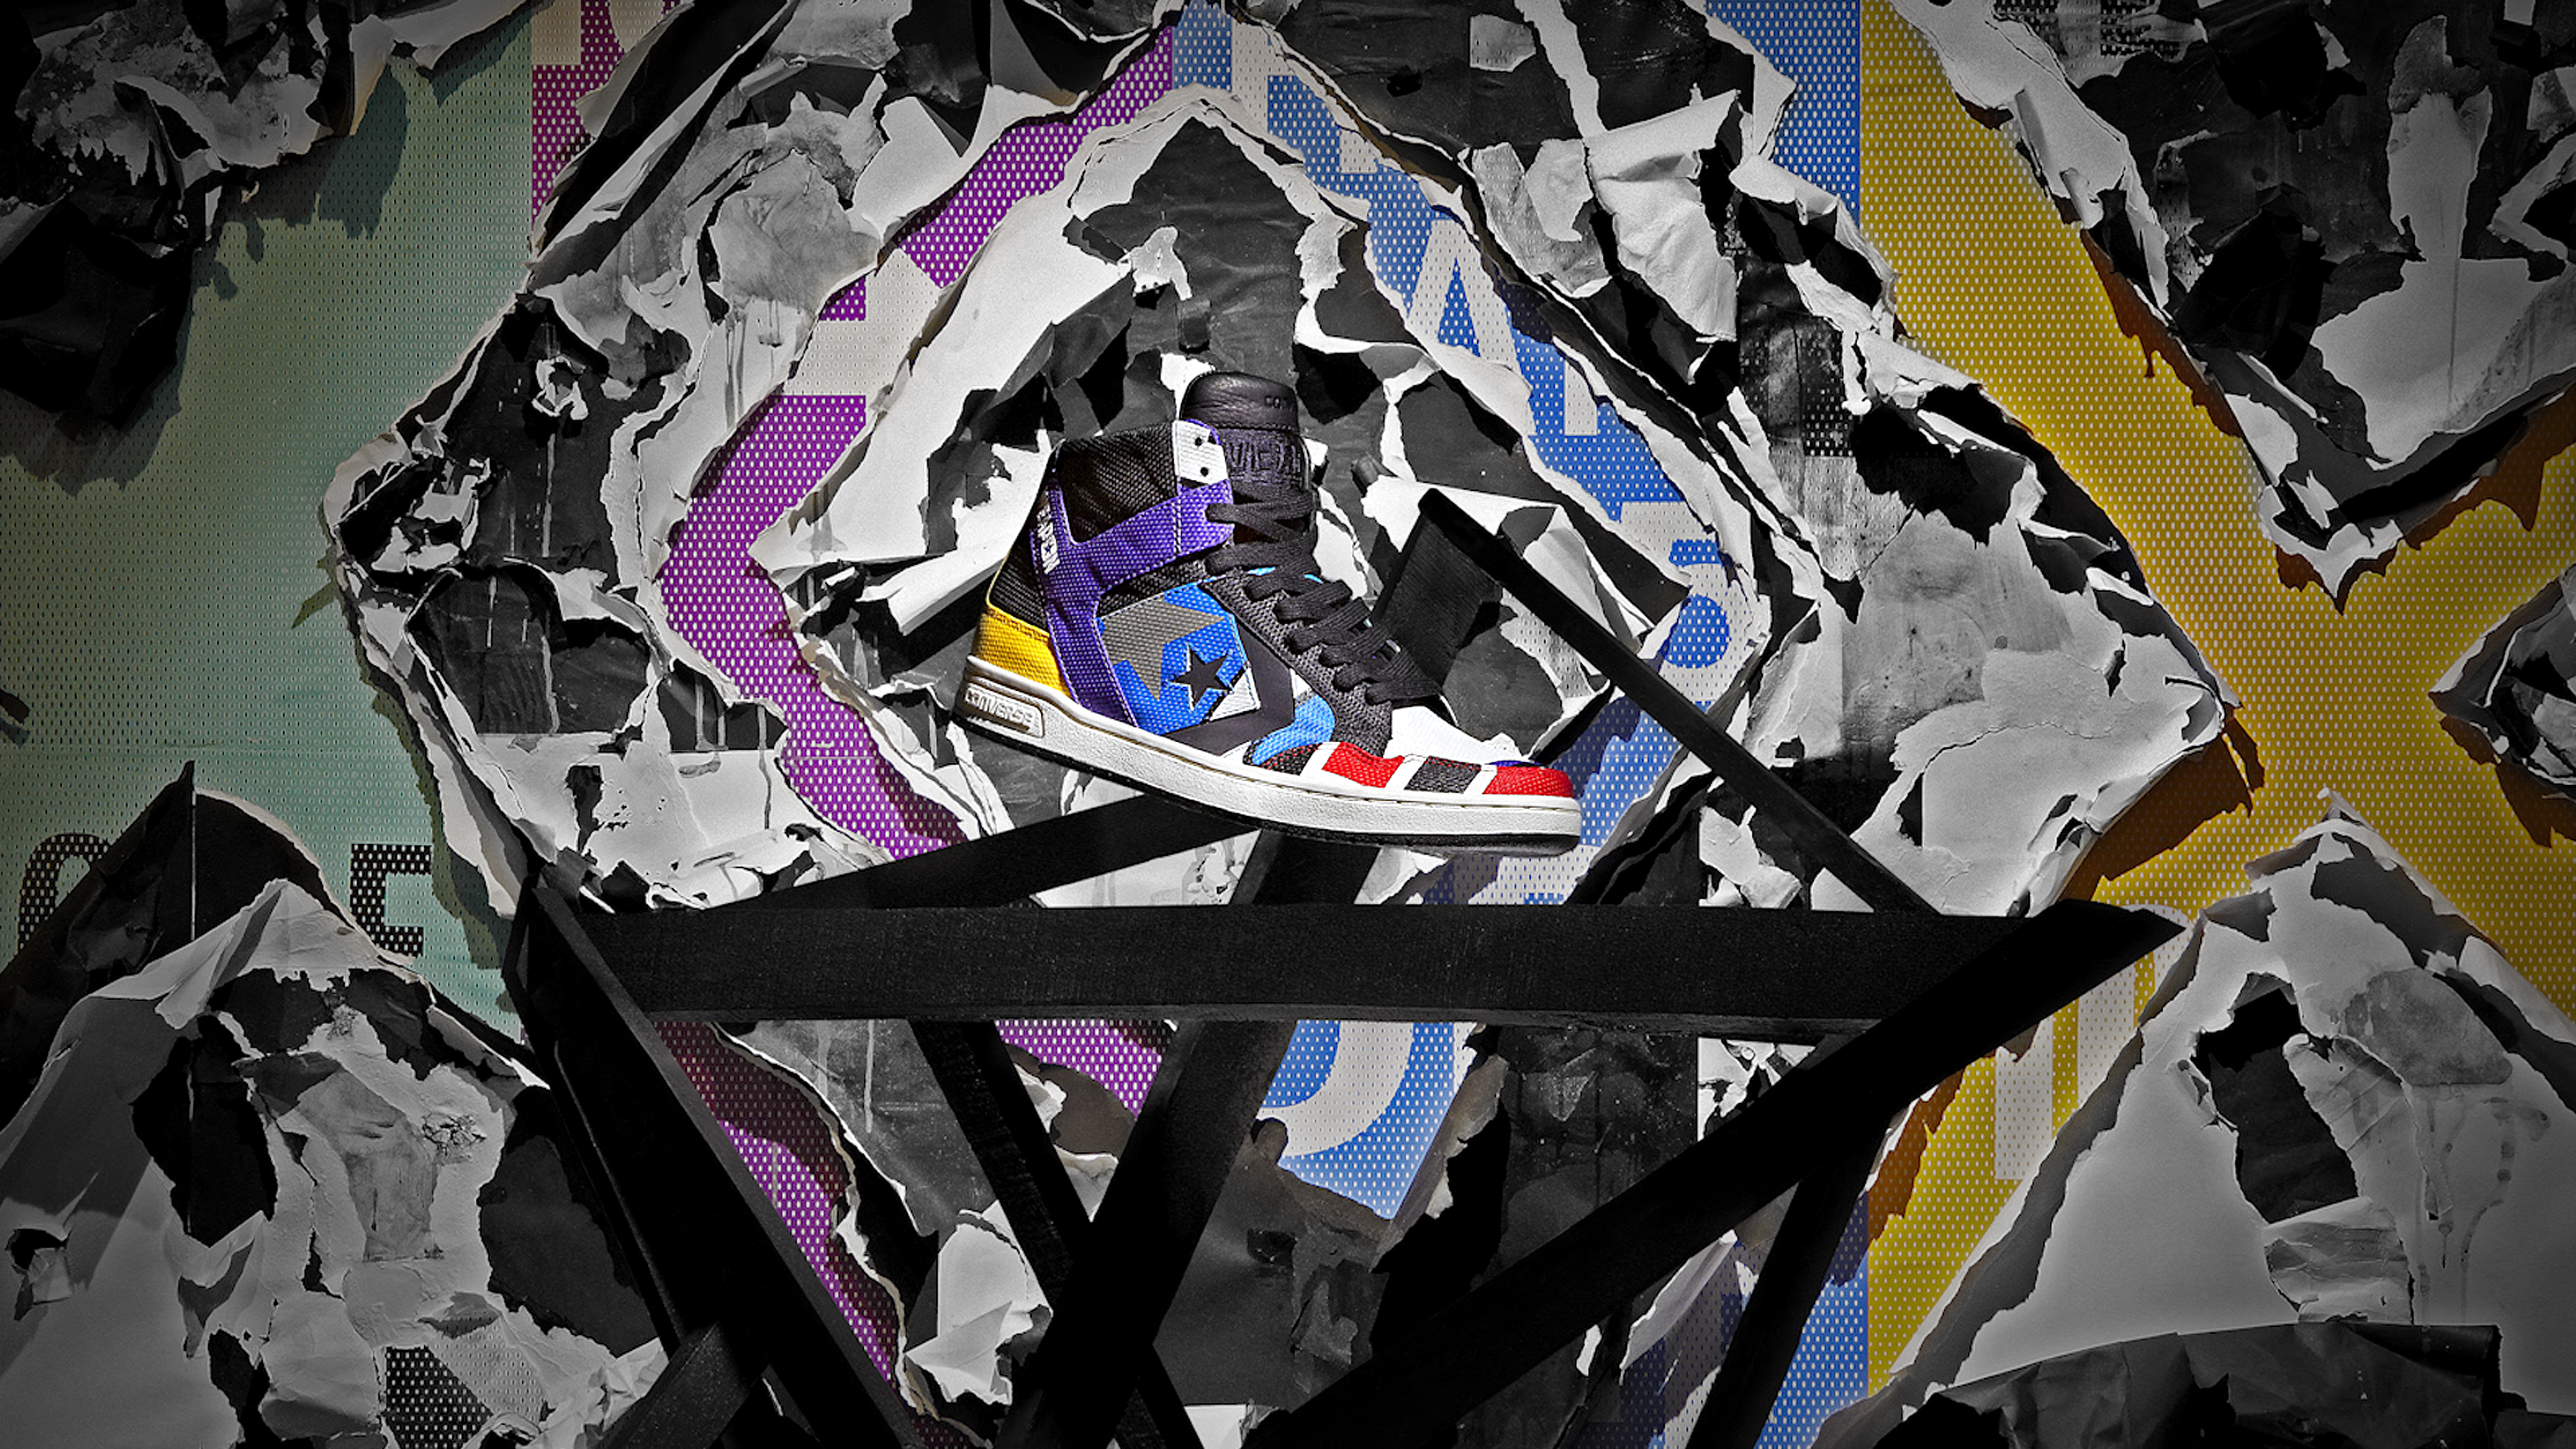 Converse Announces New CONS Weapon Sneaker Collection